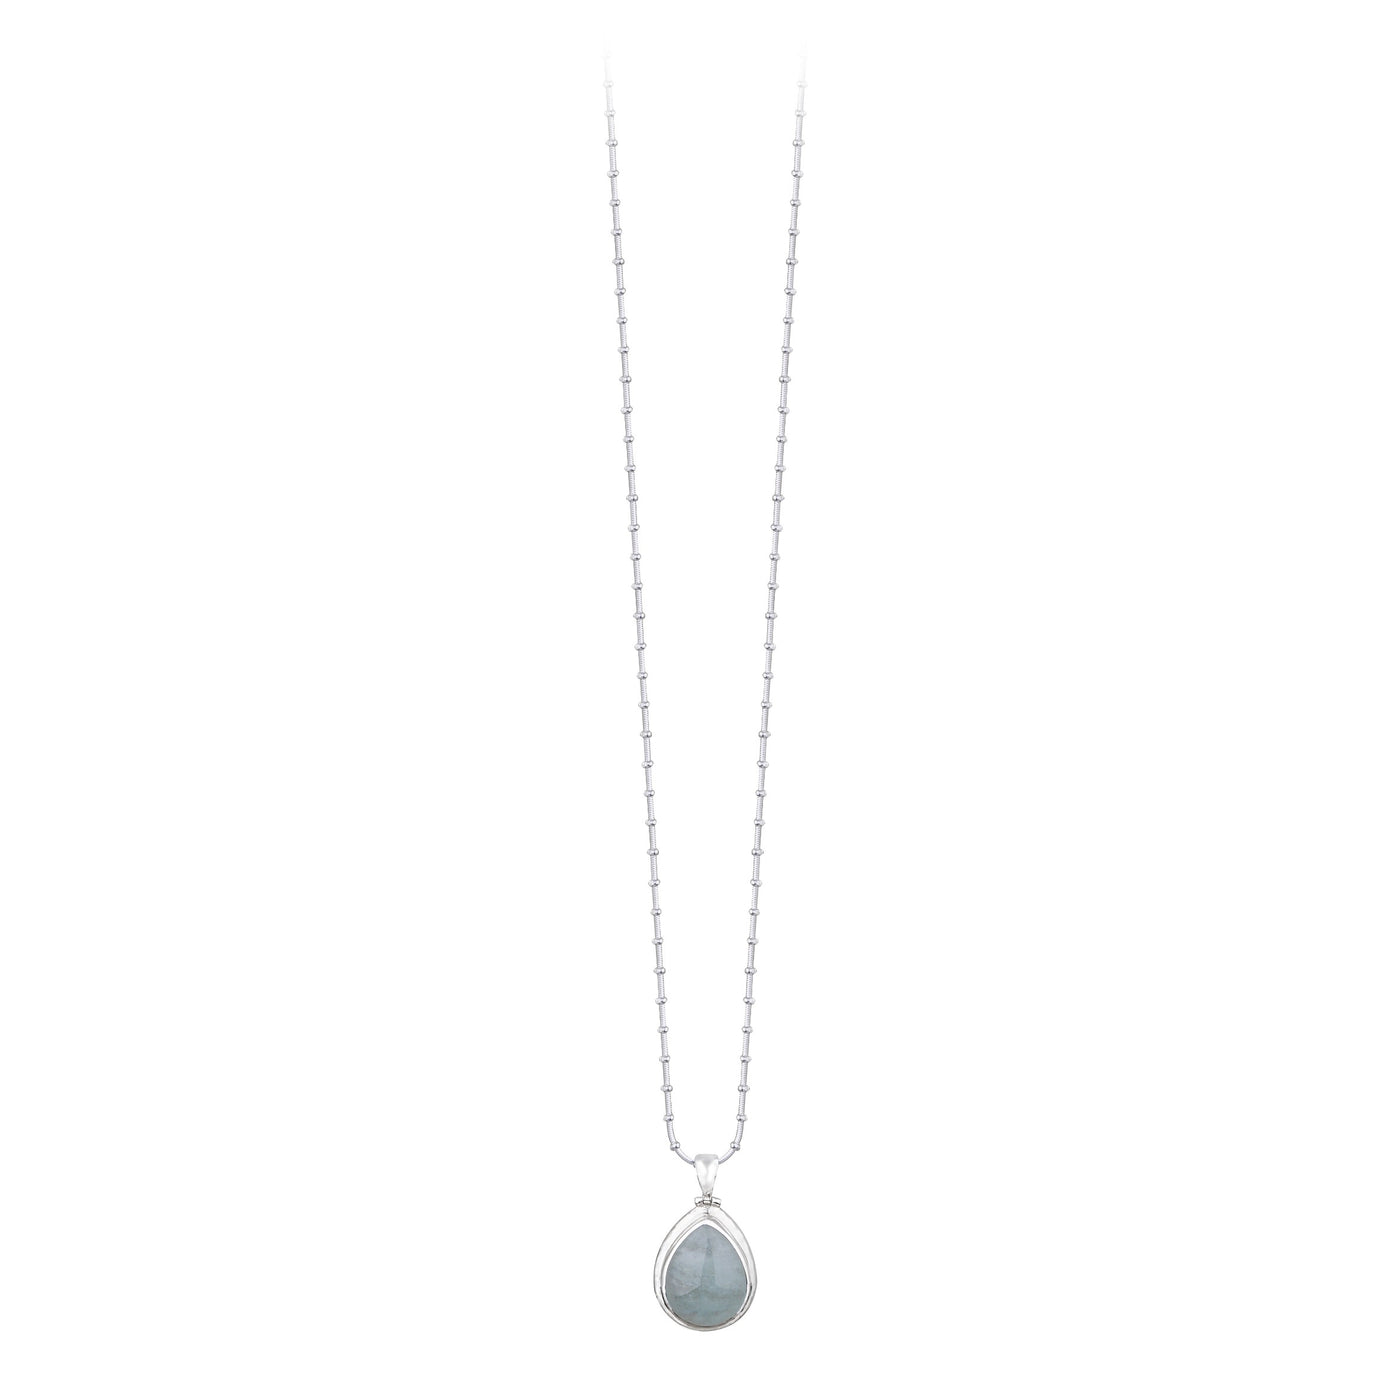 JD N64468 AQUAMARINE TEAR DROP PENDANT